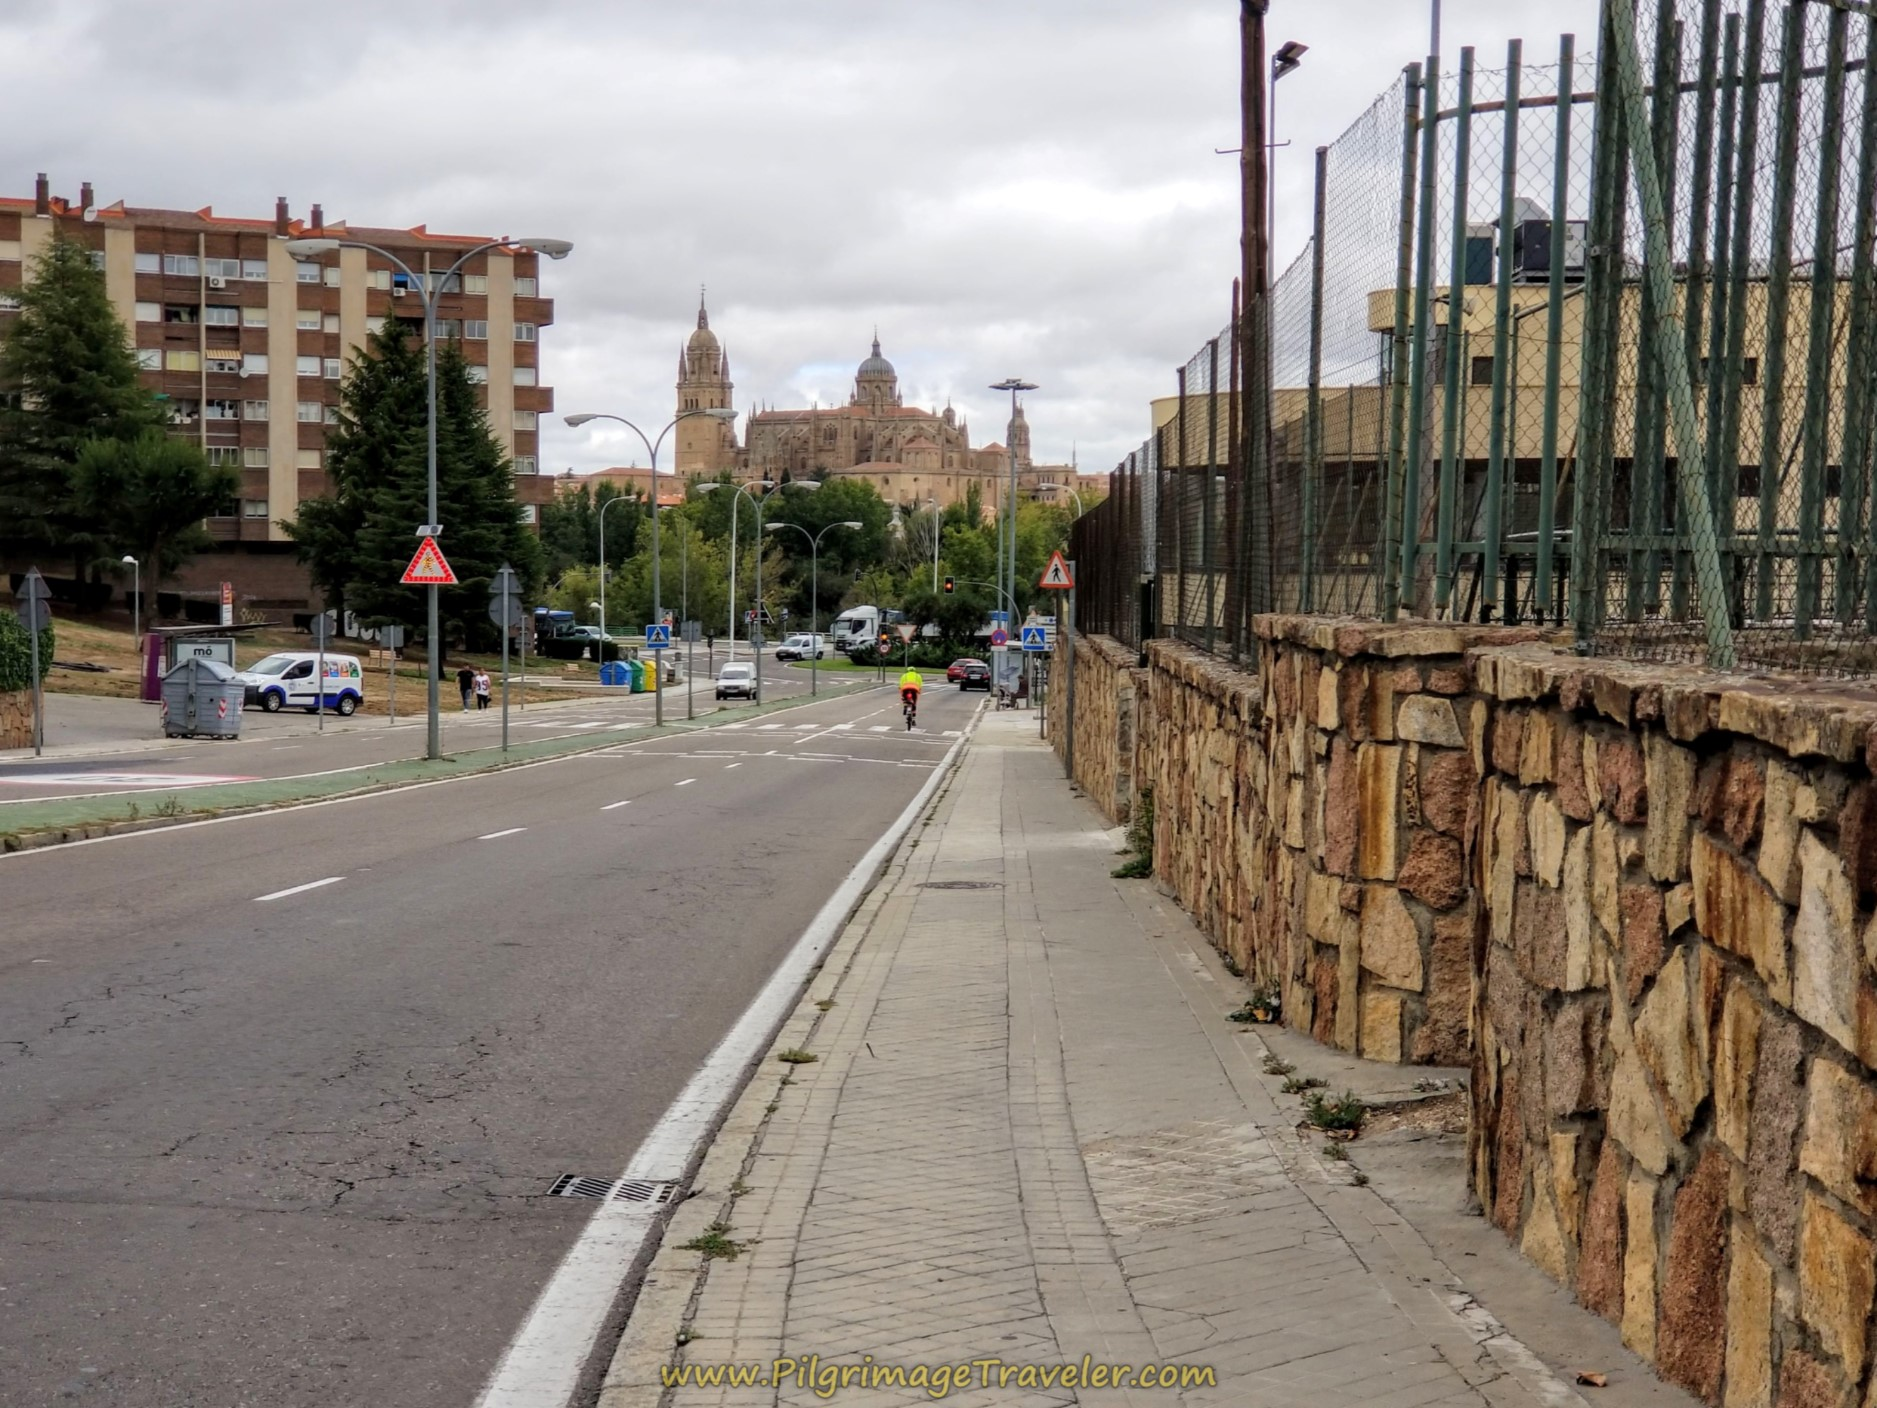 Cathedral in View on the Calle Joaquín Rodrigo